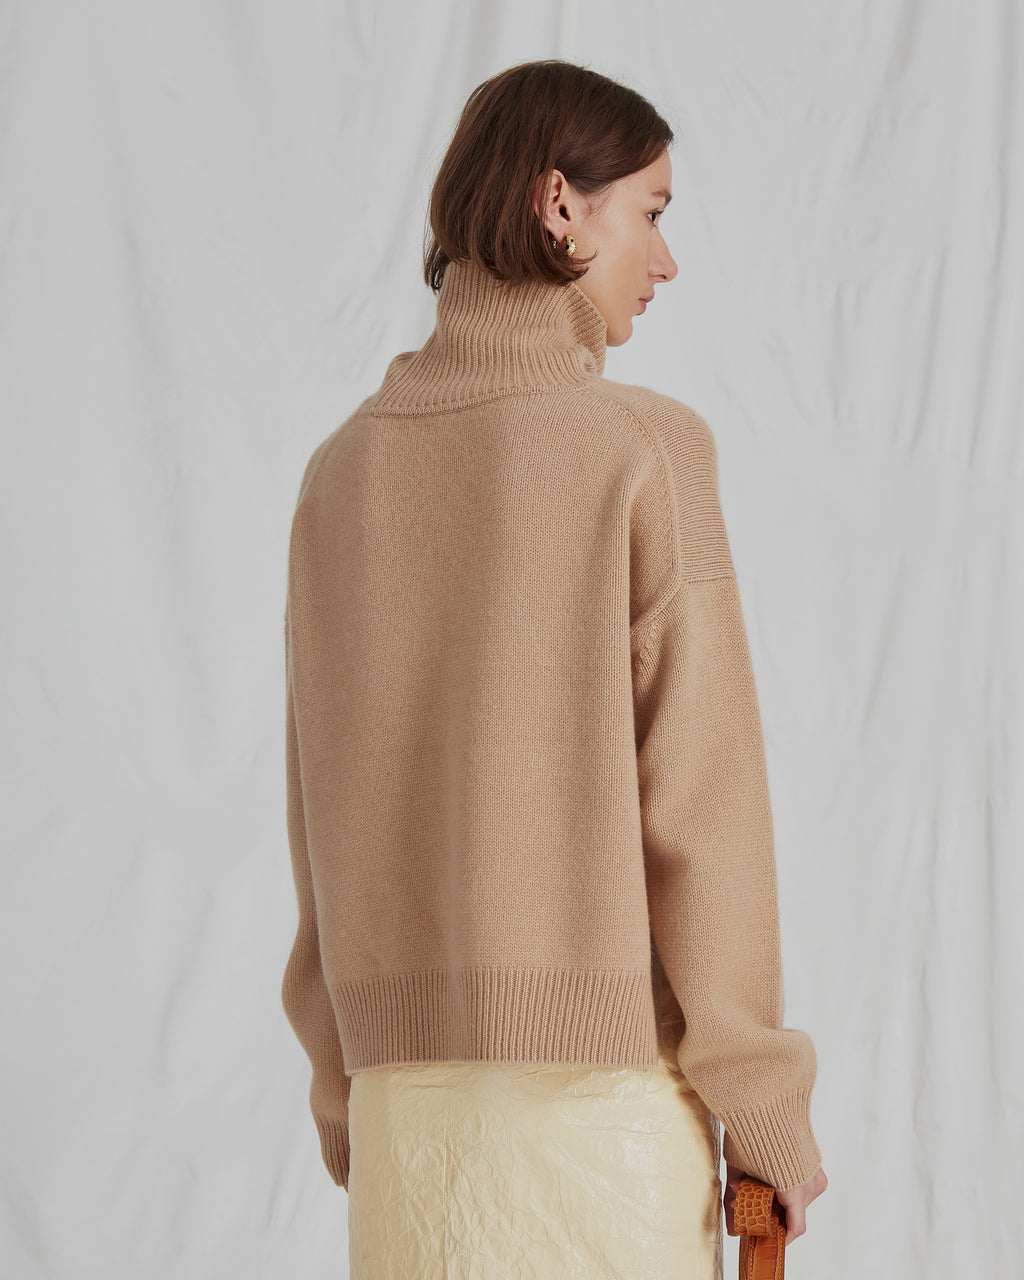 Lyn Knit Sweater Cashmere Beige - WEBSHOP EXCLUSIVE